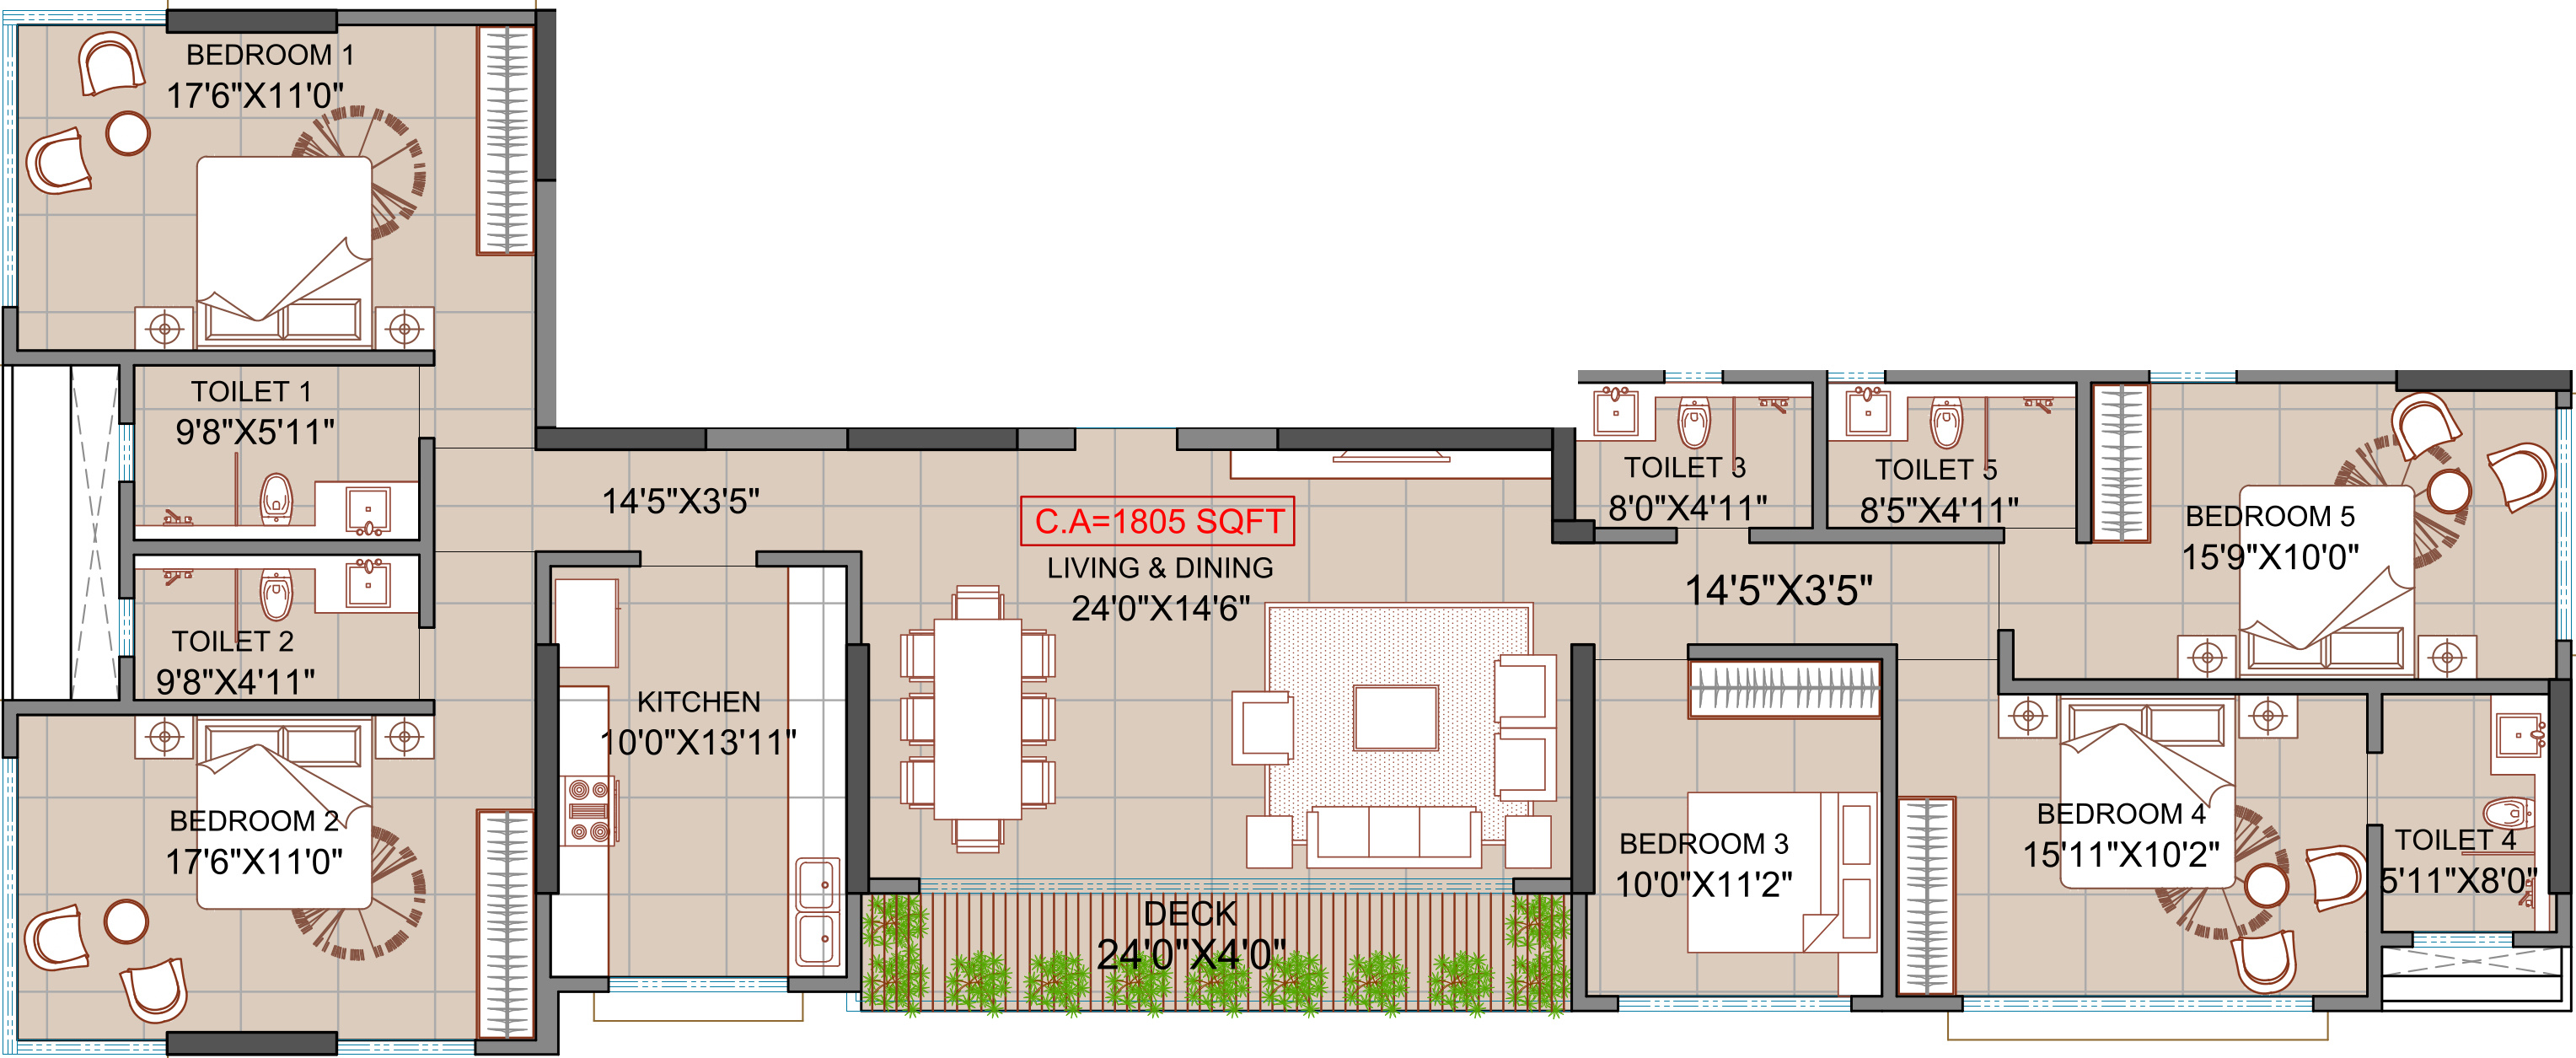 Floor plan synonym100 floor plan synonym swislocki for Floored synonym